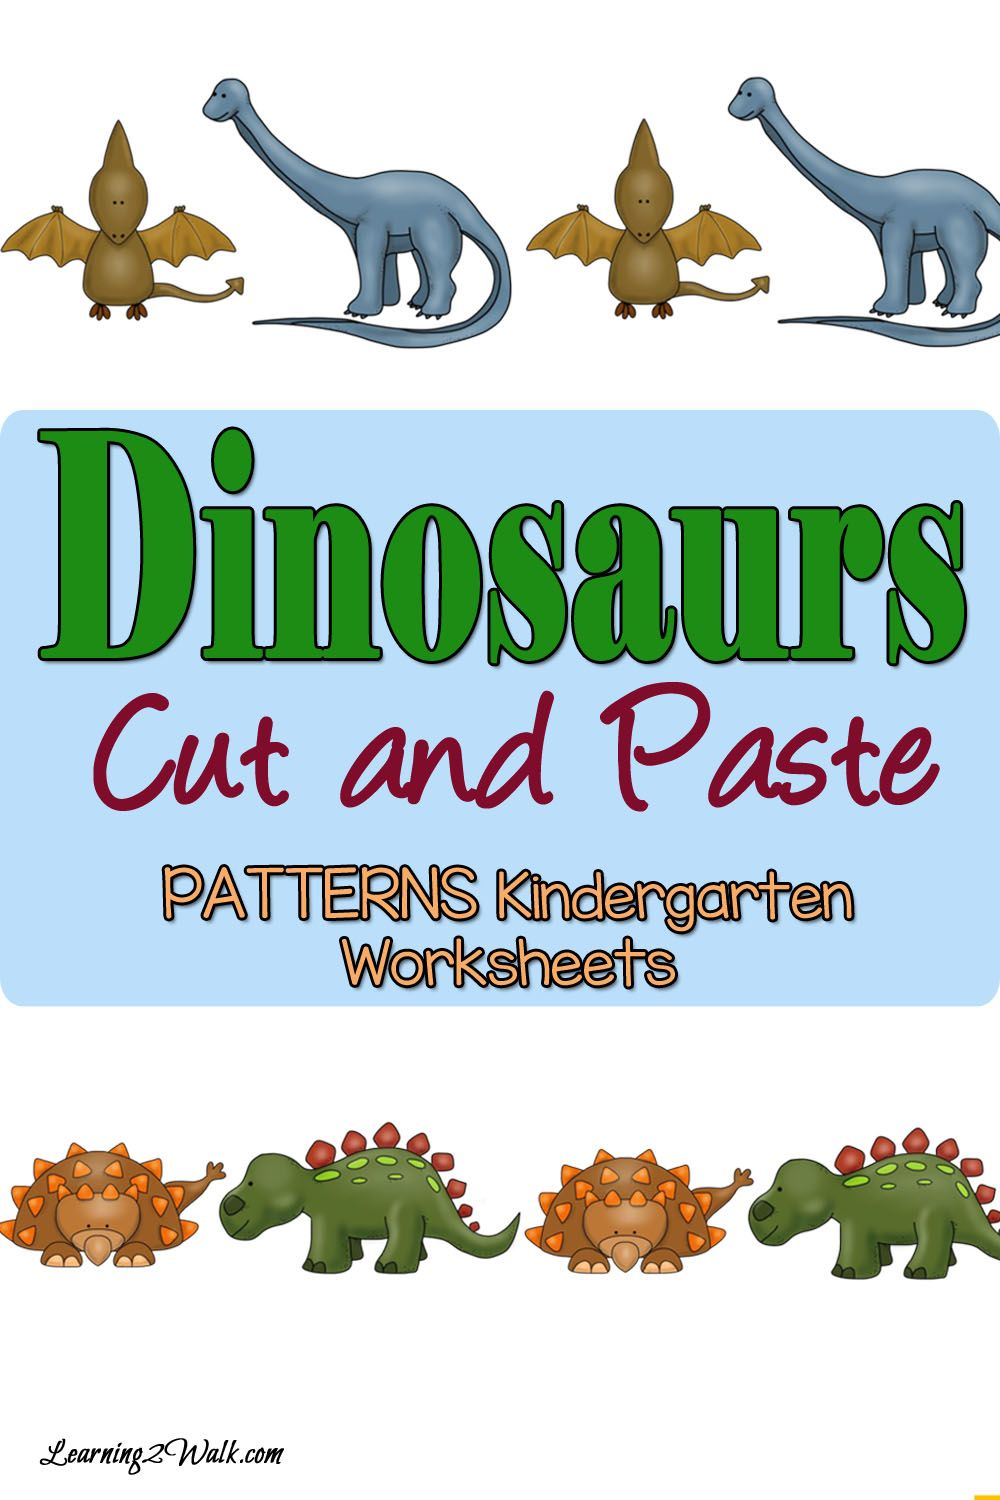 Dinosaurs Patterns Worksheets For Kindergarten Home